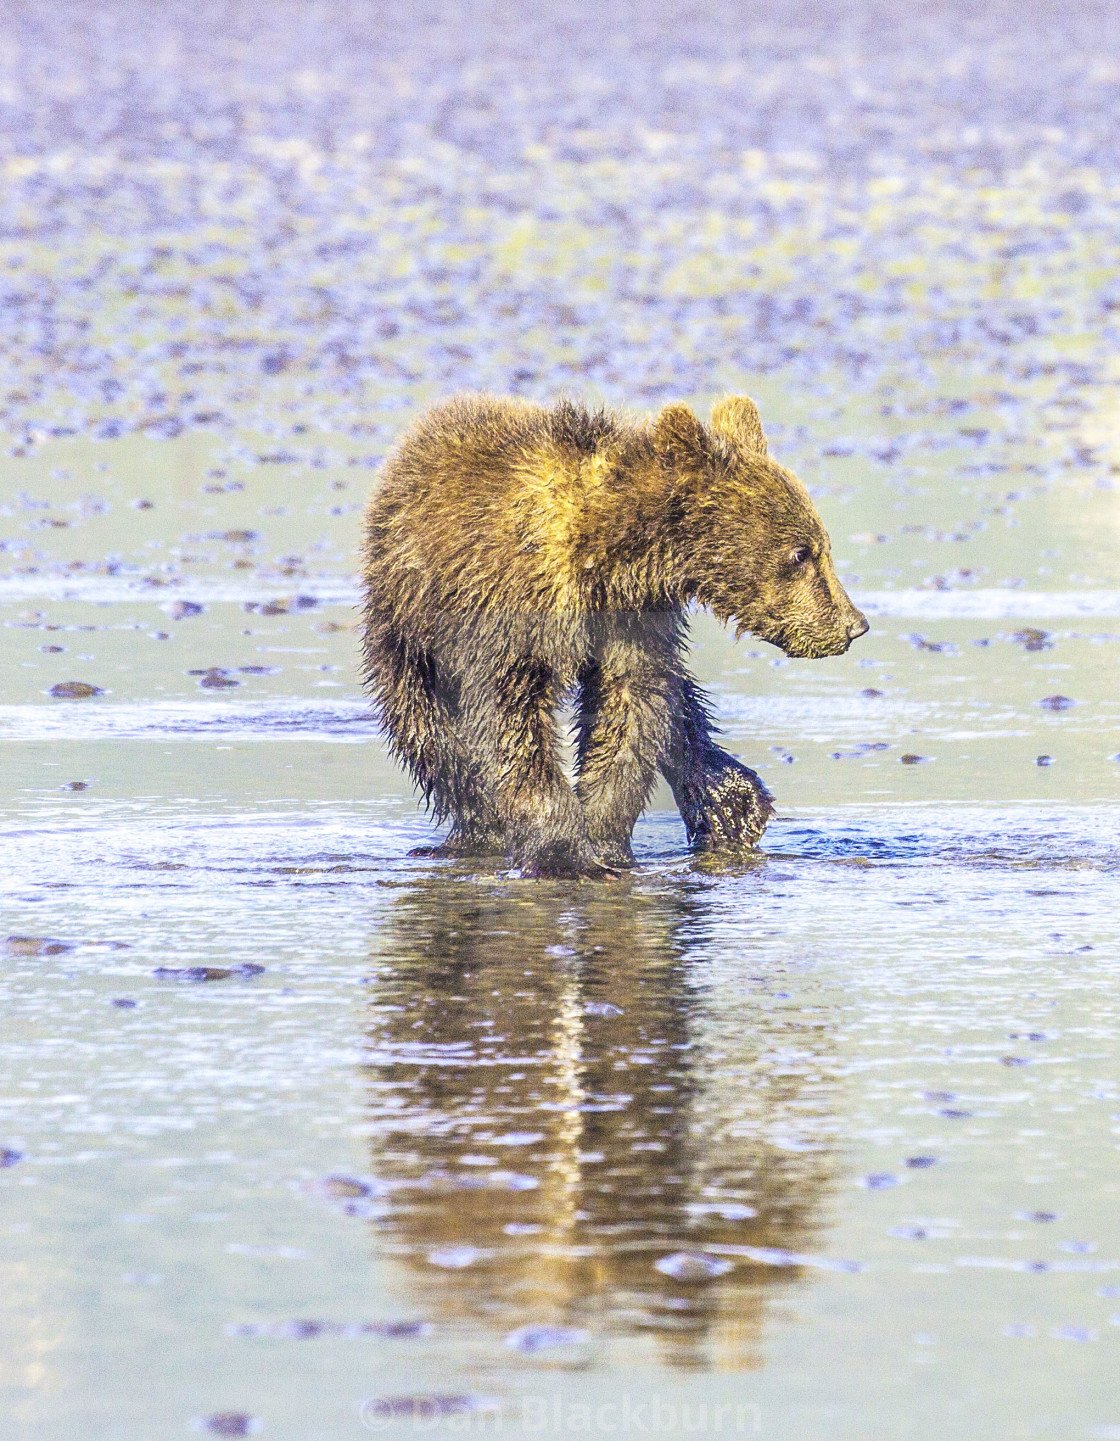 """Grizzly Bear Cub Splashing in the Water"" stock image"